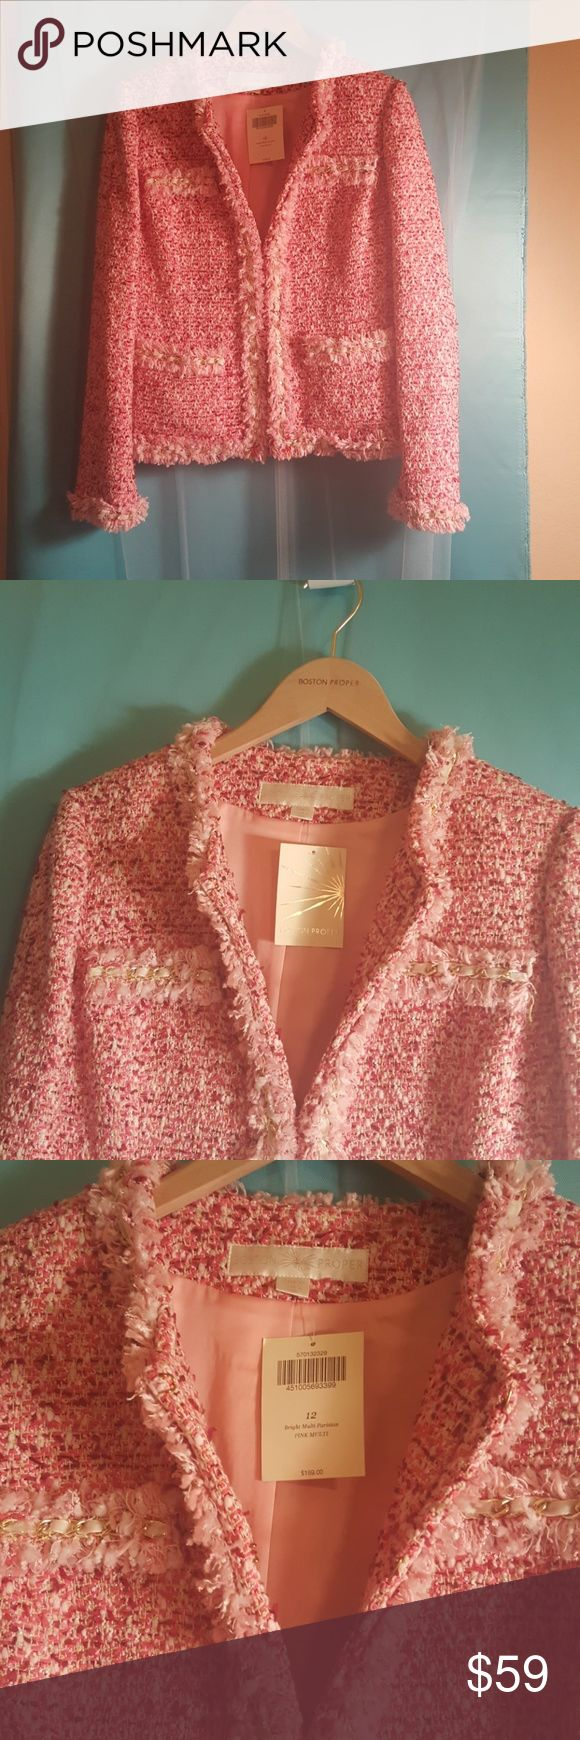 Boston Proper Parisian jacket Multicolored red and pink very similar to a Chanel design jacket without the Chanel price. Velvet Ribbon weaved in gold chain around sleeve neck and bottom of the jacket. In the front and on the pockets Boston Proper Jackets & Coats